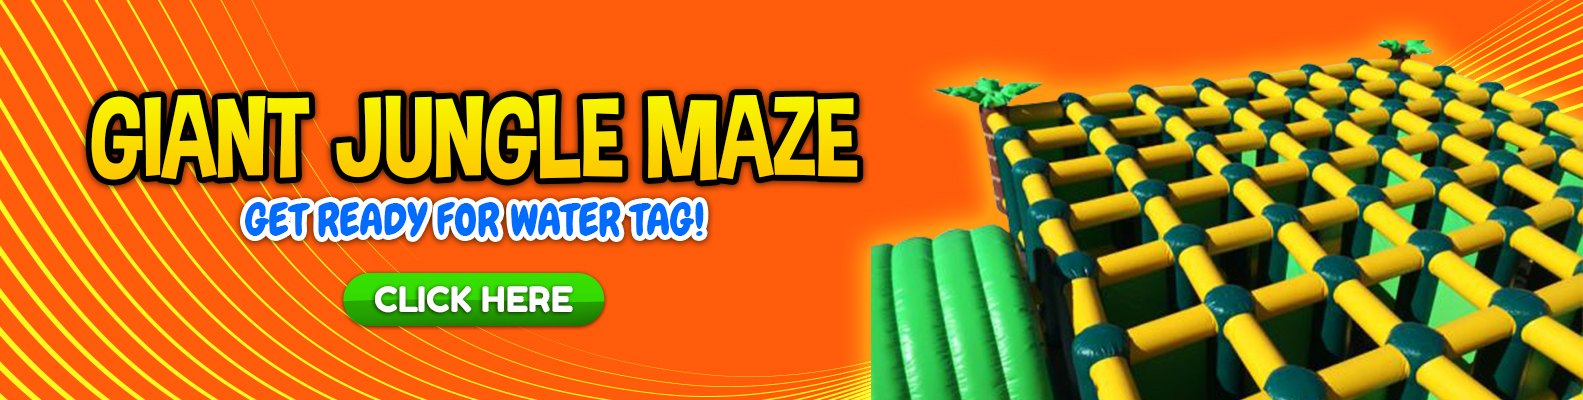 Giant Jungle Maze